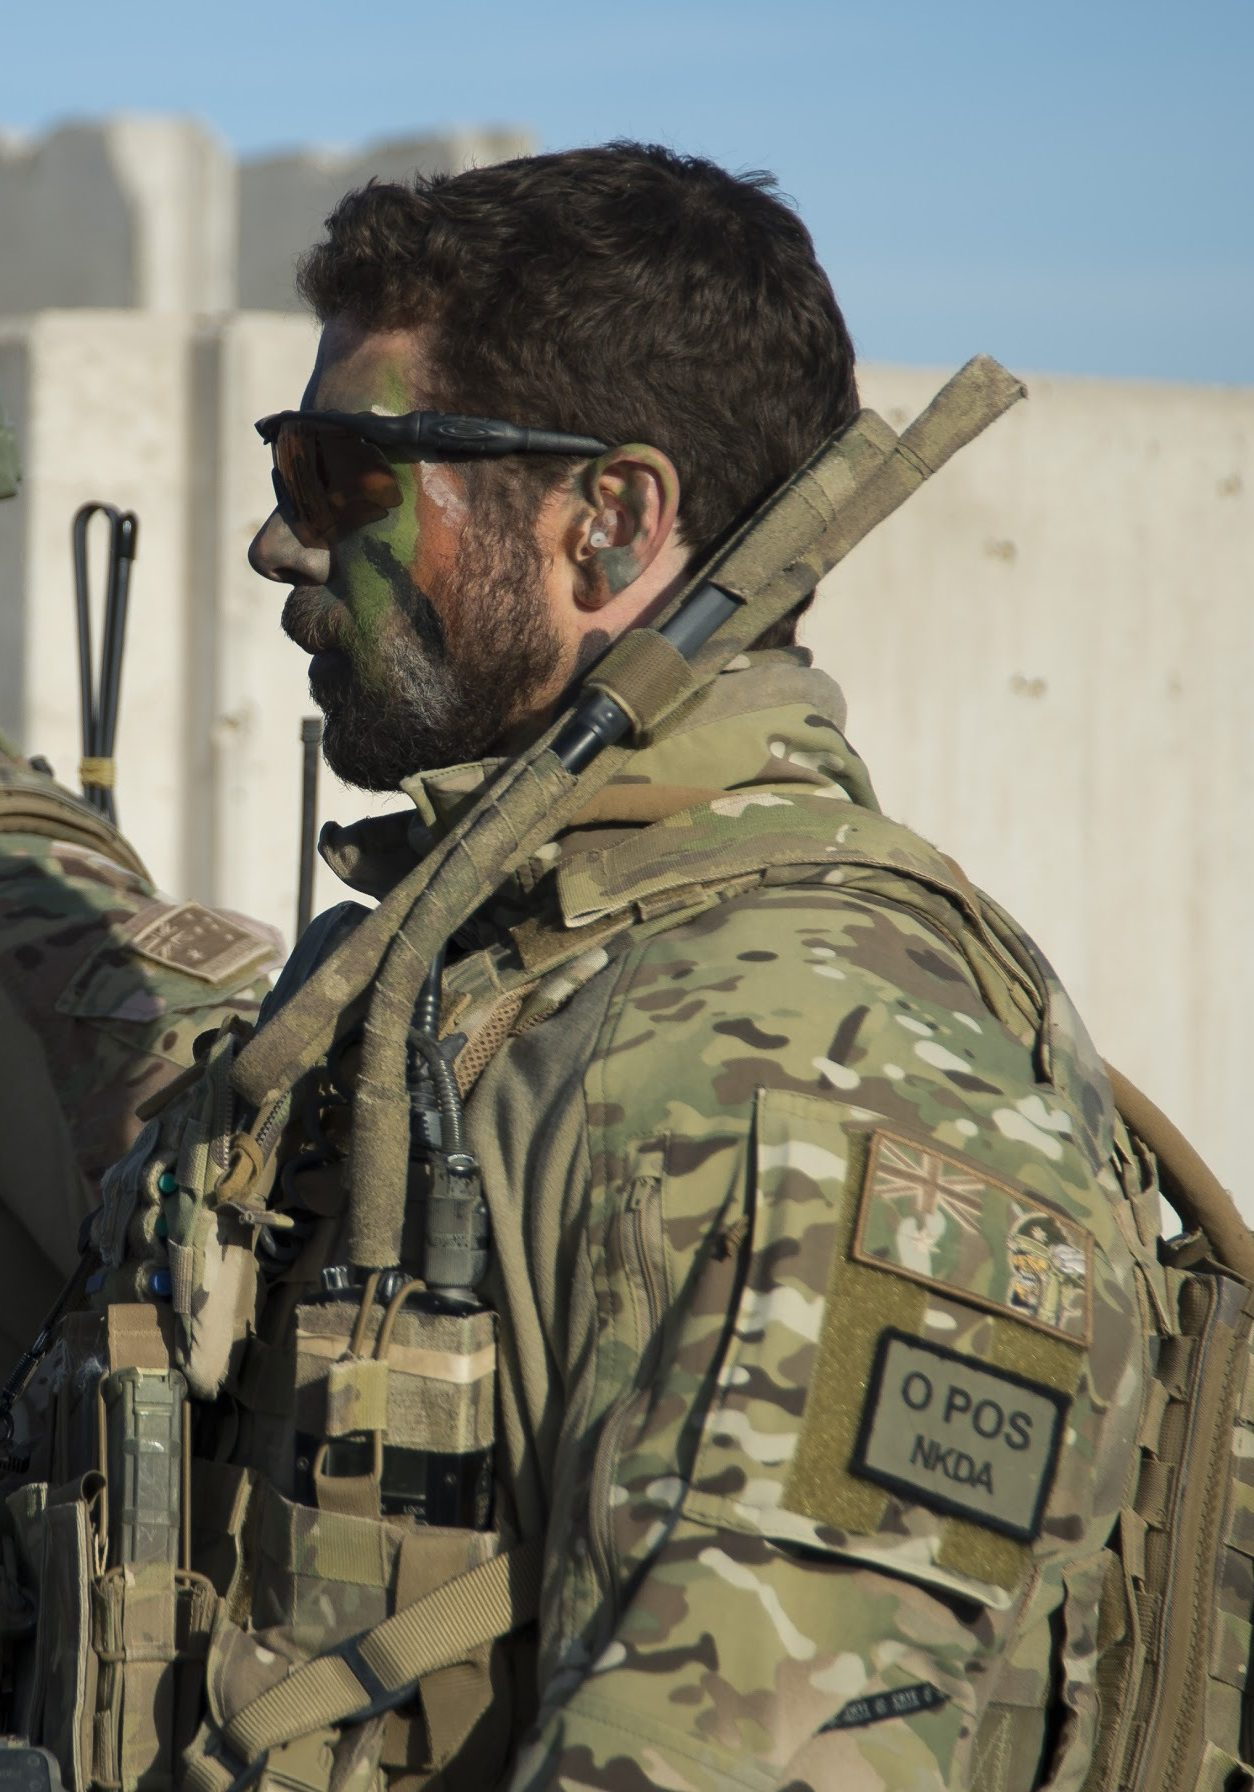 FE B at E Ramp preparing to infil on OP SRTN 11-12.08SUMMARY:PRC-U, ENABLED BY TF66 (FE-B), CONDUCTED A DELIBERATE PL STRENGTH, RW-ENABLED,C &S OPERATION IVO, CHAR CHINEH, SHAHIDI-E HASAS DISTRICT, URUZGAN PROVINCE.THE FE CLEARED KNOWN INS HAZ/COI IOT EXPOSE AND DISRUPT URZ INS THREATGROUPS.AT 250830DE NOV 12, PRC-U ENABLED BY TF66B INSERTED VIA 2 X UH-60S AND2 X CH-47S. THE 2 X UH-60S CONDUCTED AVF TASKING WHILE THE 2 X CH47 INSERTEDTWO SEPARATE CLEARANCE FE WHILST AVF WAS MAINTAINED TO PROVIDECONTAINMENT FOR THE TWO CLEARANCE FE. FM 250900DE NOV 12 PRC-U ENABLED BYTF66B CONDUCTED A DELIBERATE 'ANSF-IN-THE-LEAD' CLEARANCE OF INS HAZ ANDCOIS IVO NE CHAR CHINEH RESULTING IN SEVERAL IED FINDS AND A CCA ENGAGEMENTOF AN INS EMPLACING A IED. AT 251230DE NOV 12 THE FE EXTRACTED VIA 2 X UH60SAND 2 X CH47S. THIS EXTRACTION WAS SUPPORTED BY 1 X AWT. ALL HELOS RETURNEDTO MNBTK FOR EOM.BDA:CCA ENGAGEMENT MGRS 41S QS 50010 51840 – 1 X EKIA.CACHE FIND IVO MGRS 41S QS 4917 5106 – CONSTRUCTED IED.CACHE FIND IVO MGRS 41S QS 50141 51230 – DTMF RECEIVERS.